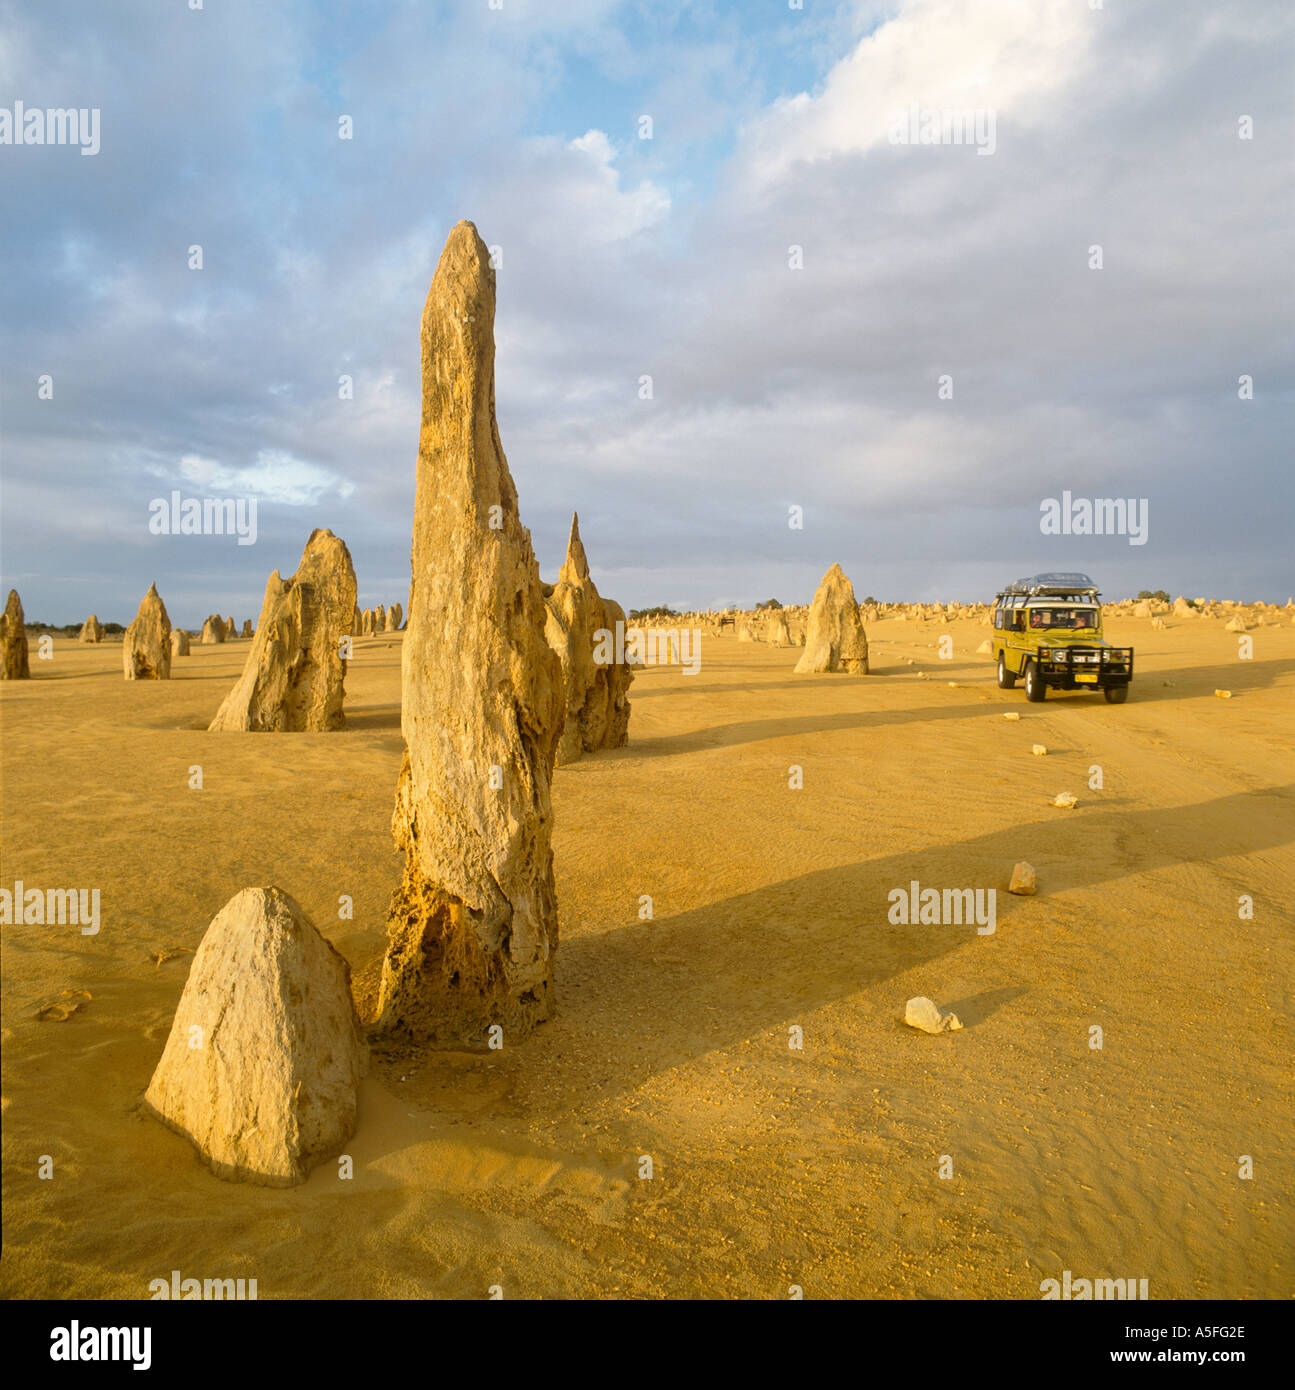 The Pinnacles in early evening light, Nambung National Park, Western Australia, Australia - Stock Image